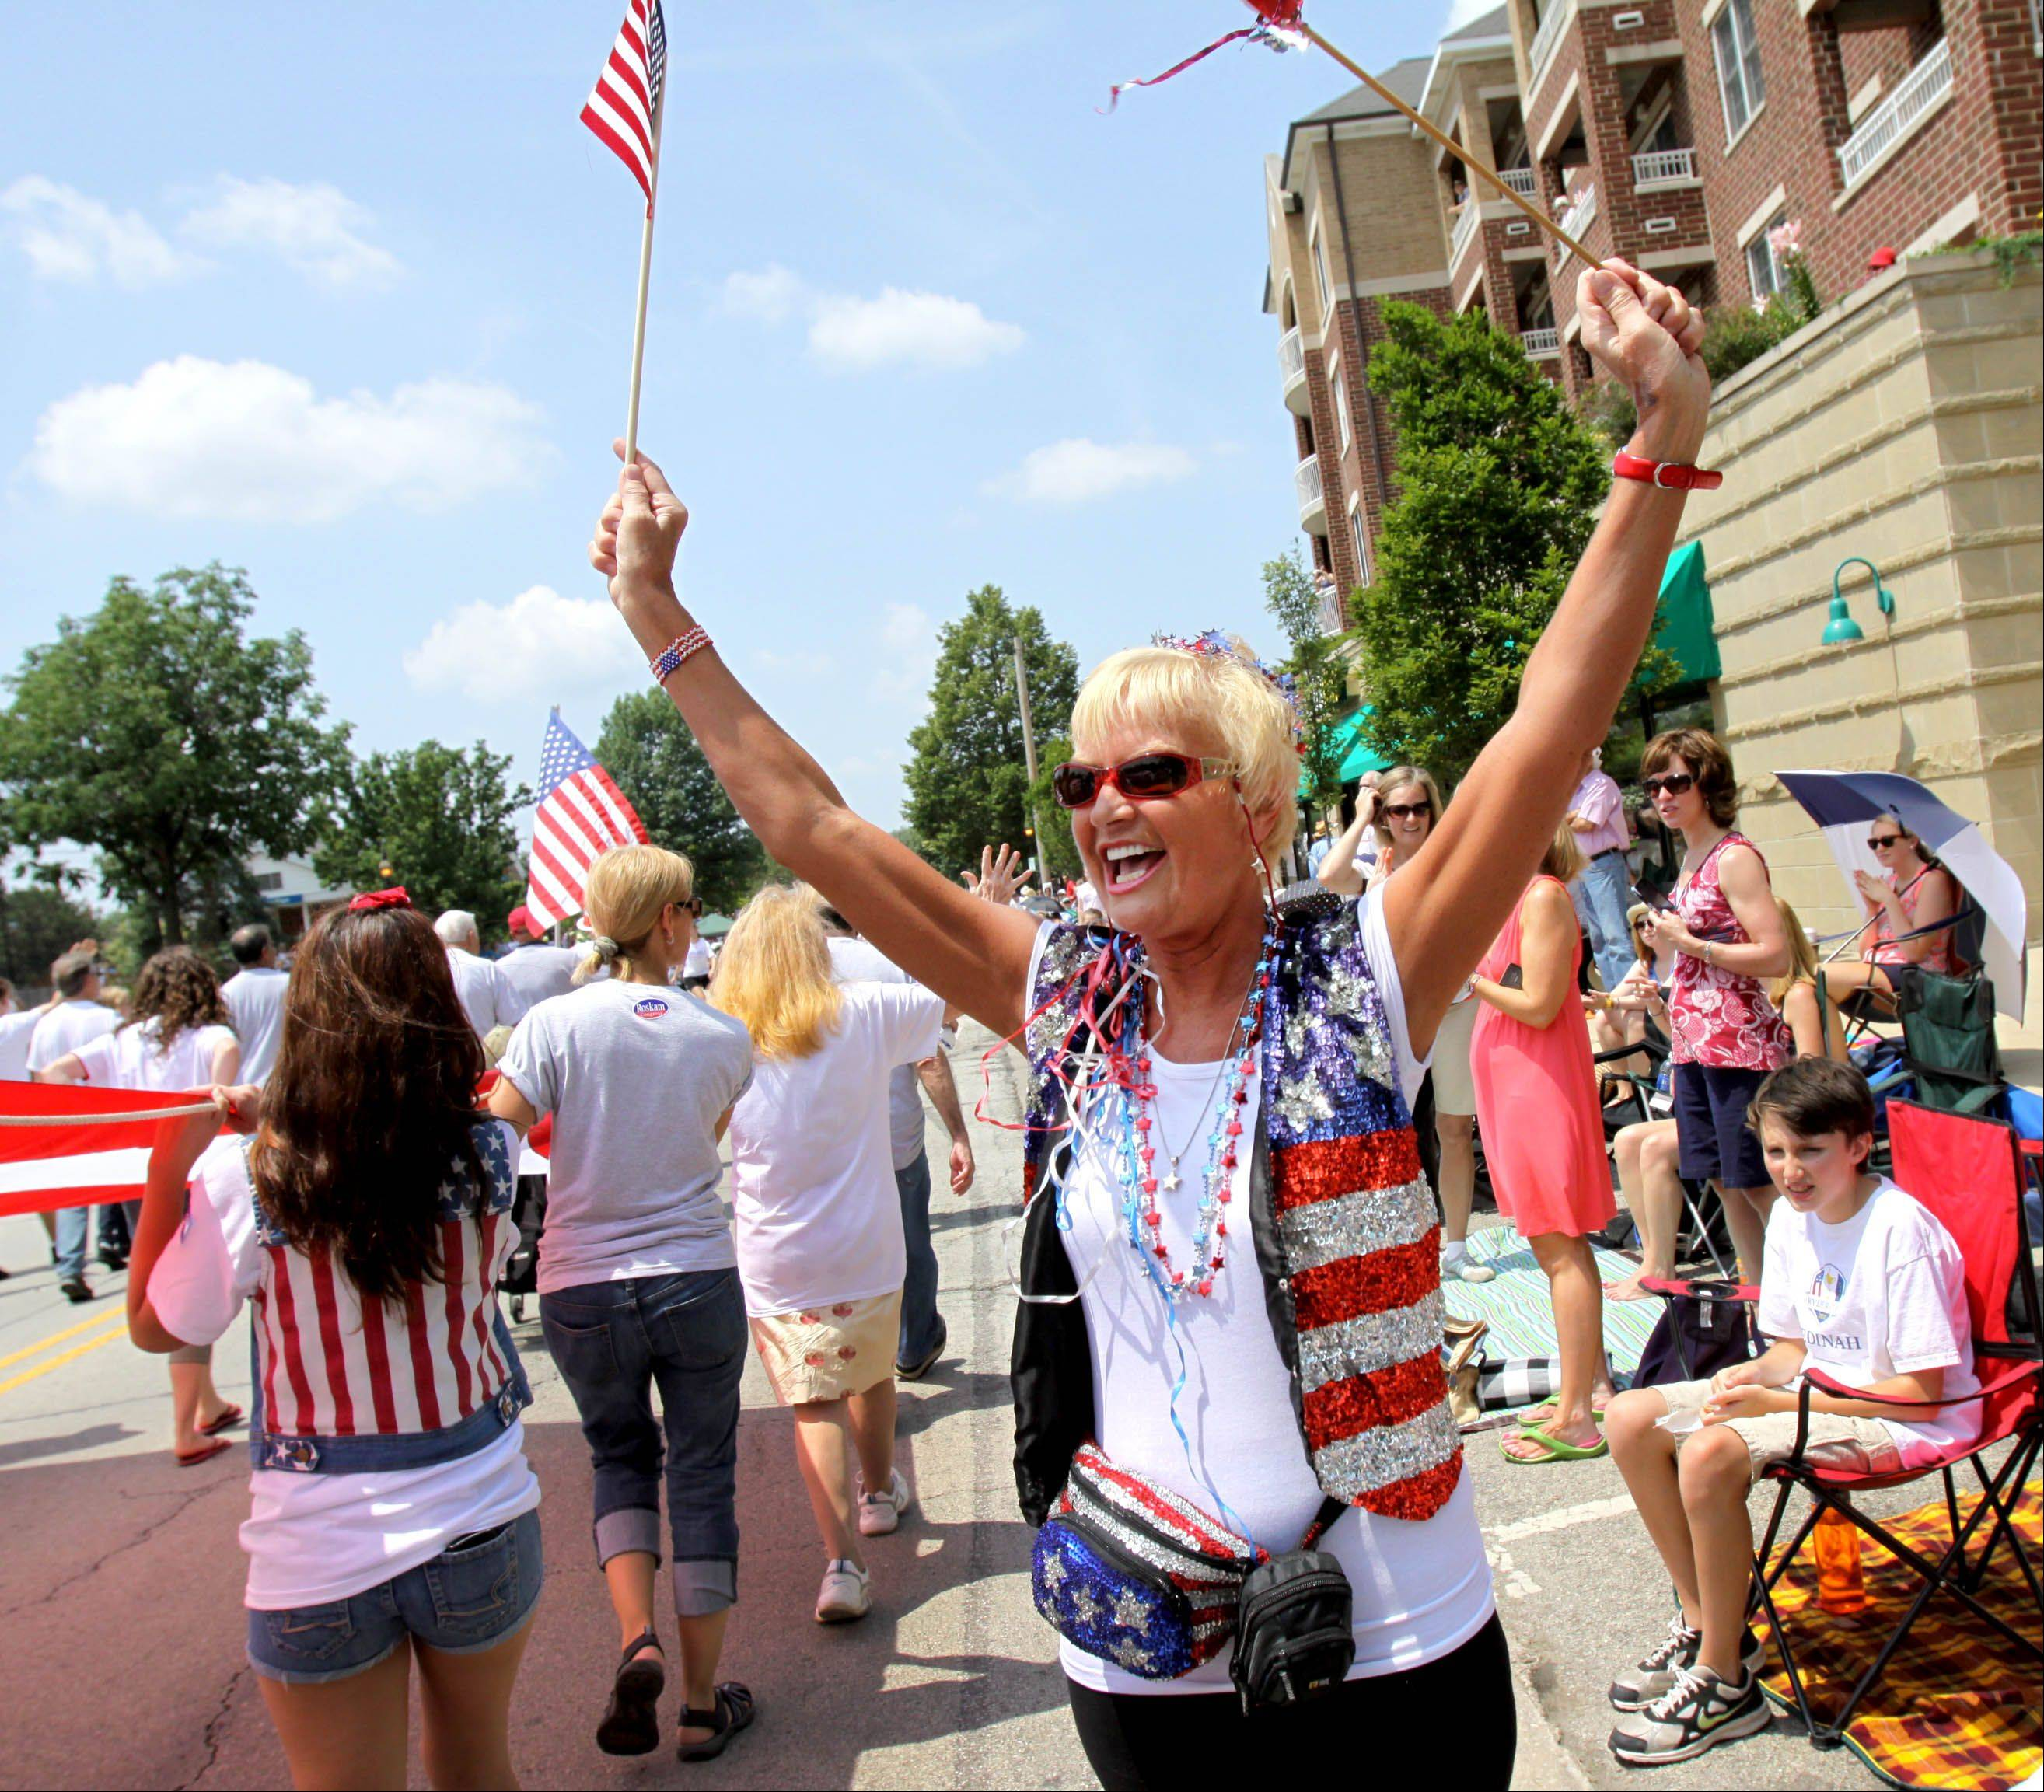 Diane Telander of Glen Ellyn cheers and waves as the 4th of July parade goes by on Crescent Boulevard in Glen Ellyn on Thursday.